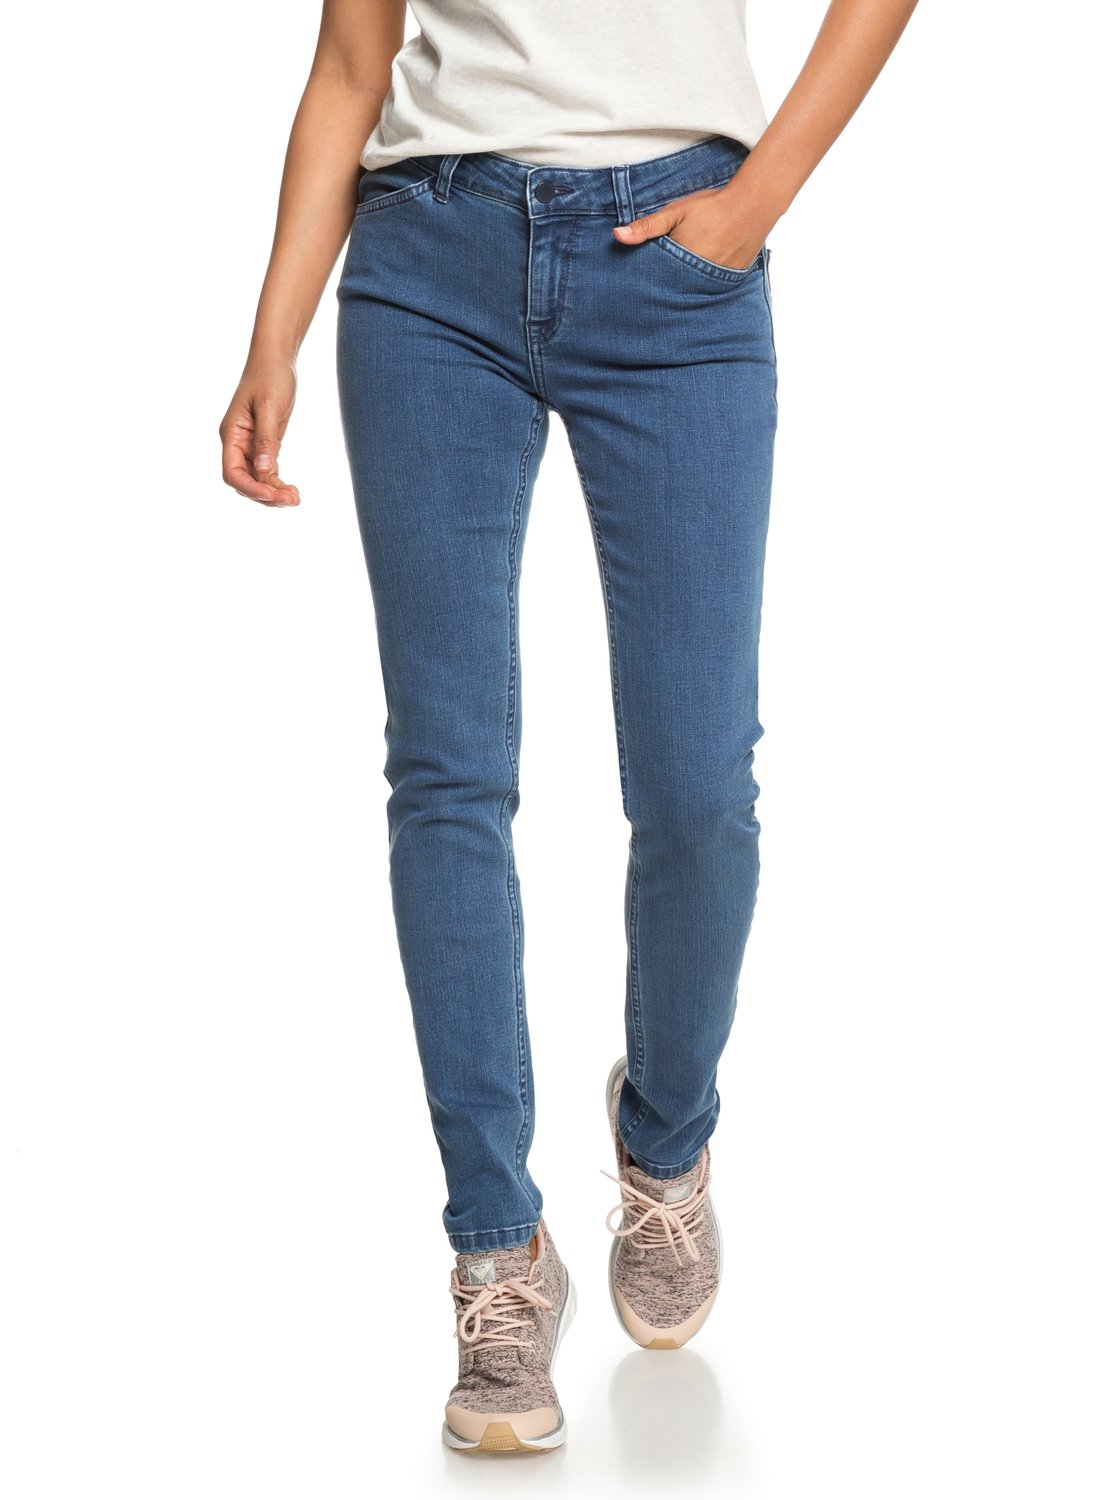 be025a3e253ee Crazy Maze - Skinny Fit Jeans for Women